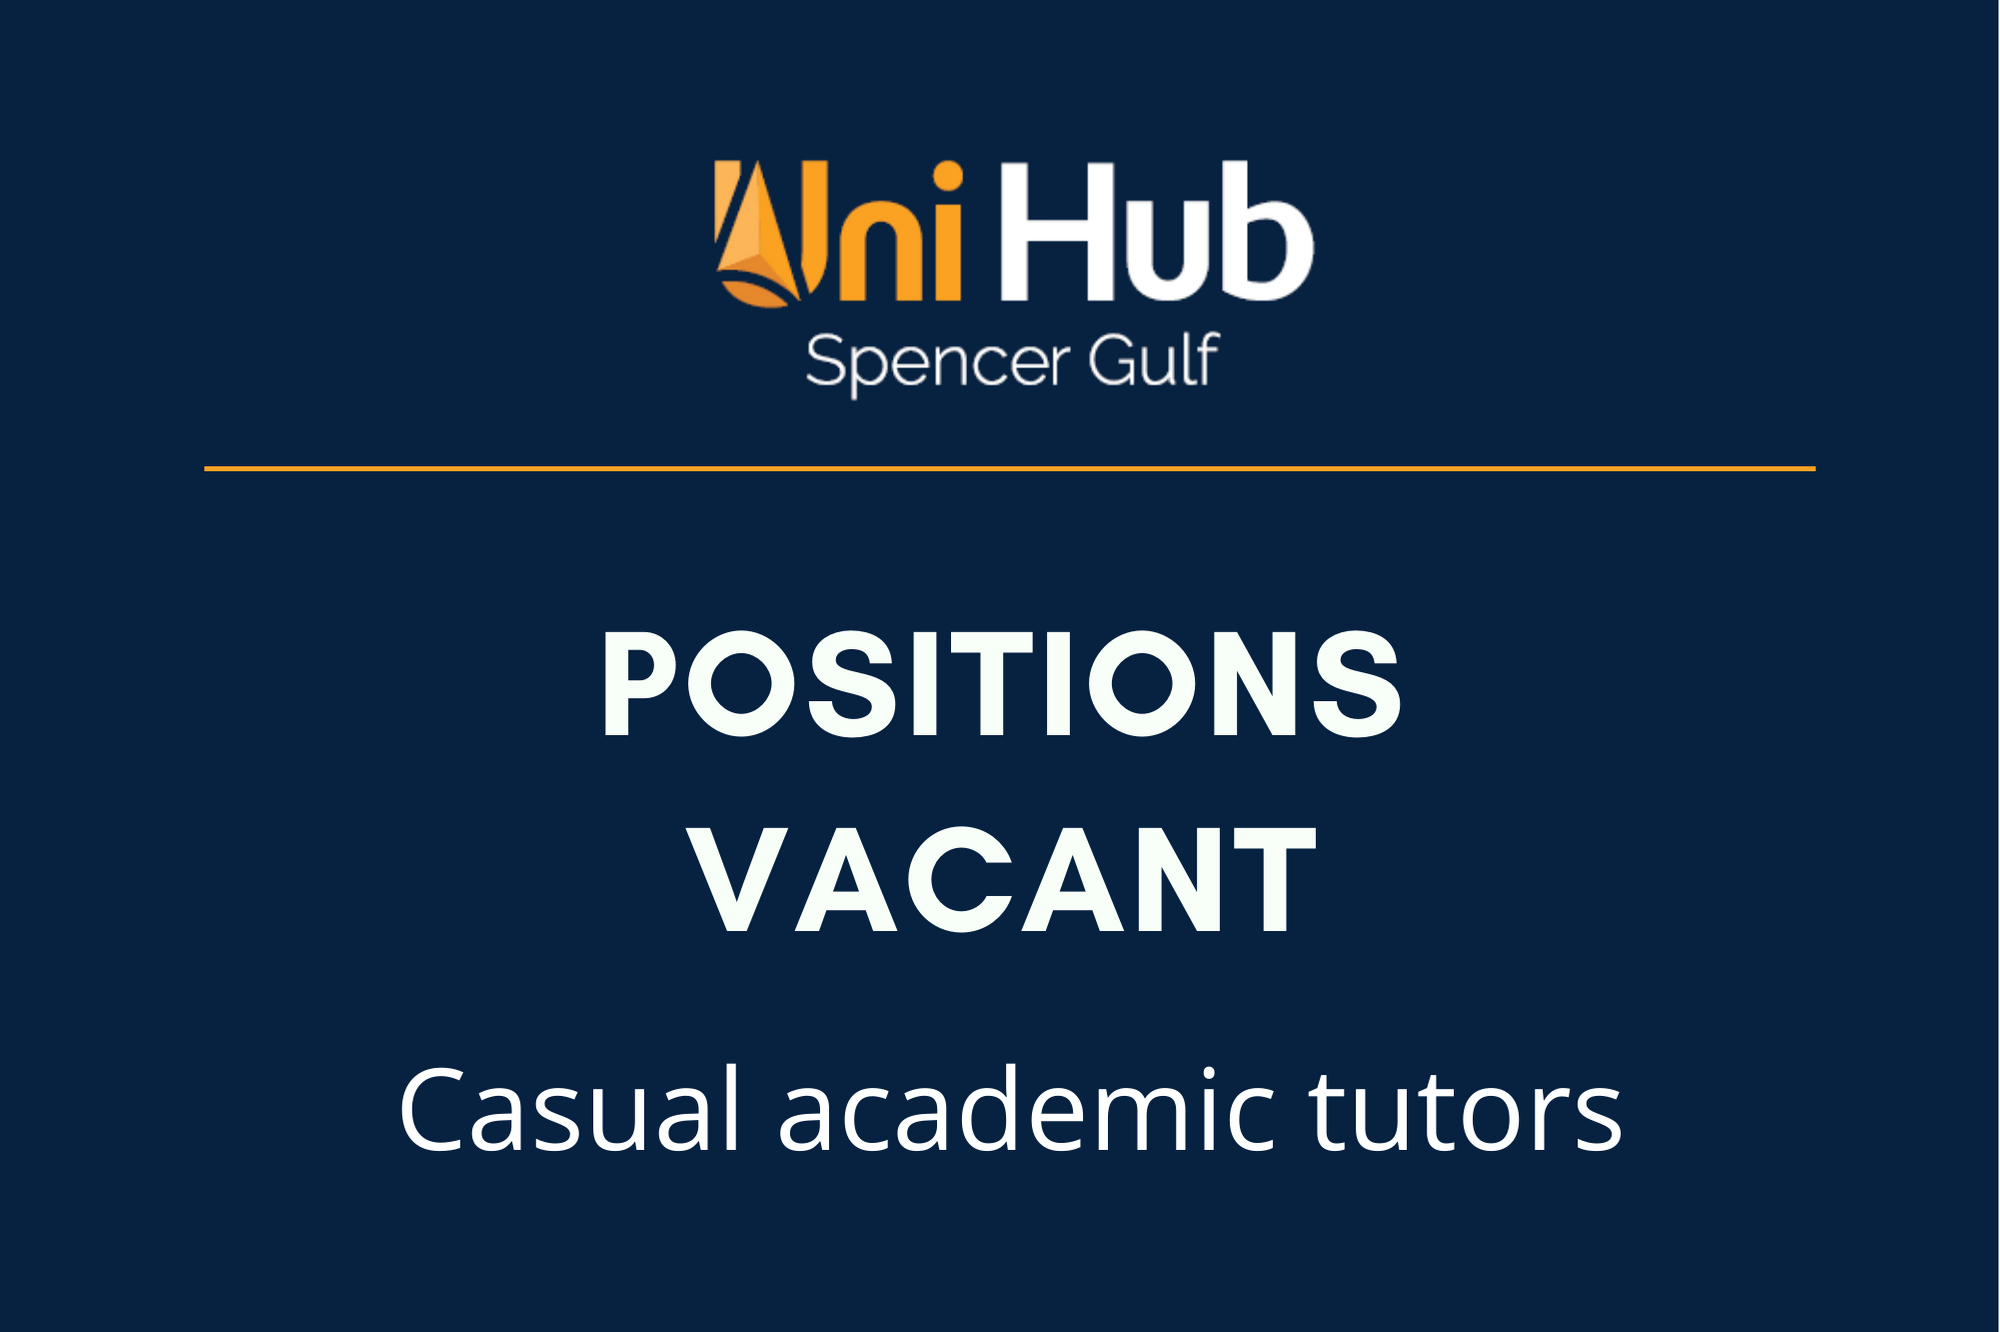 Positions vacant